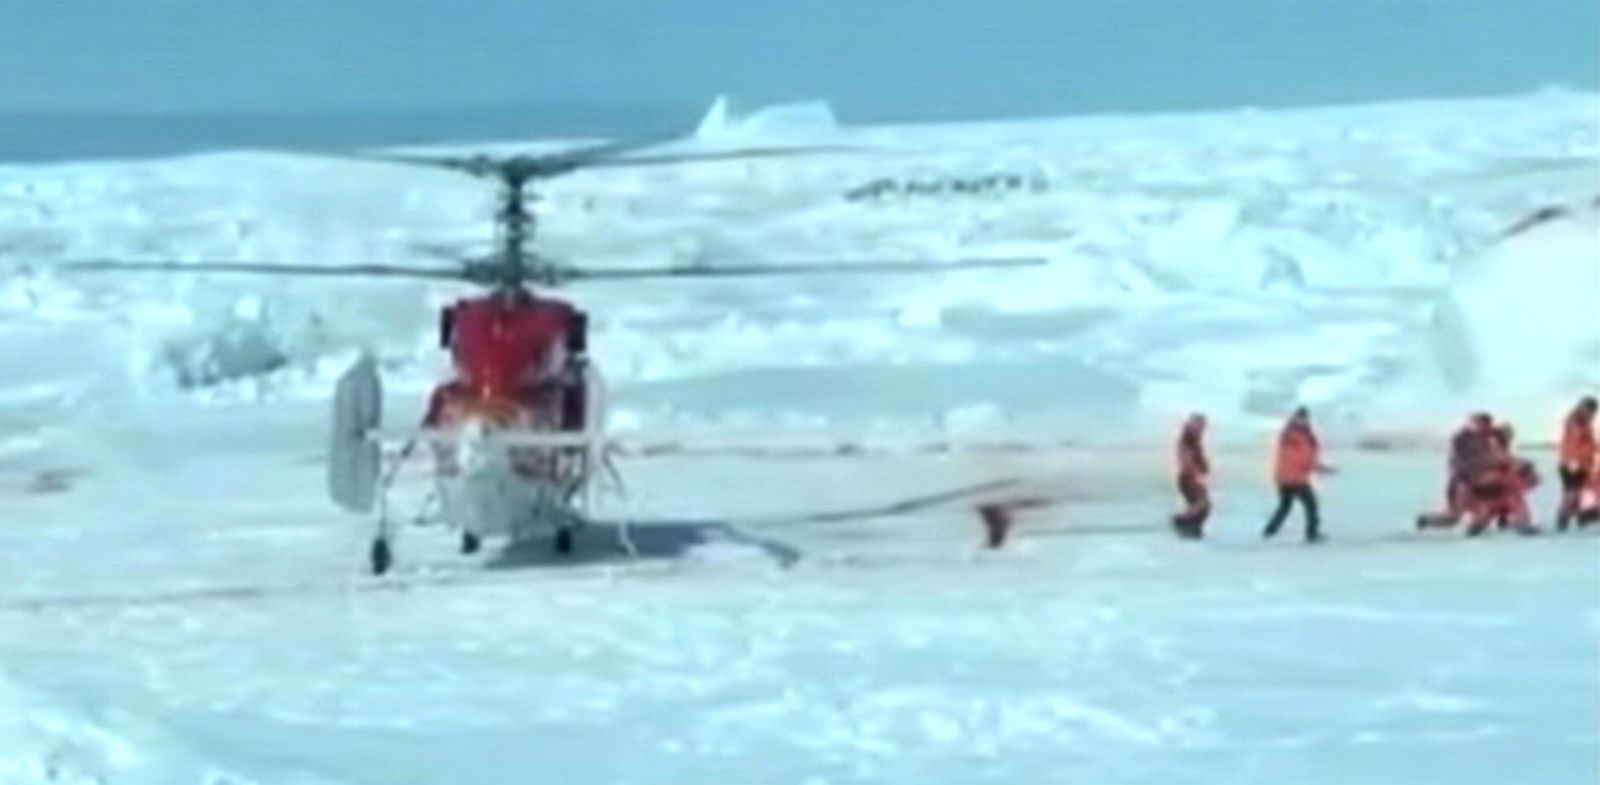 PHOTO: A helicopter lands on ice to rescue the passengers of the Russian ship MV Akademik Shokalskiy that has been trapped in ice for over a week, Jan. 2, 2014.